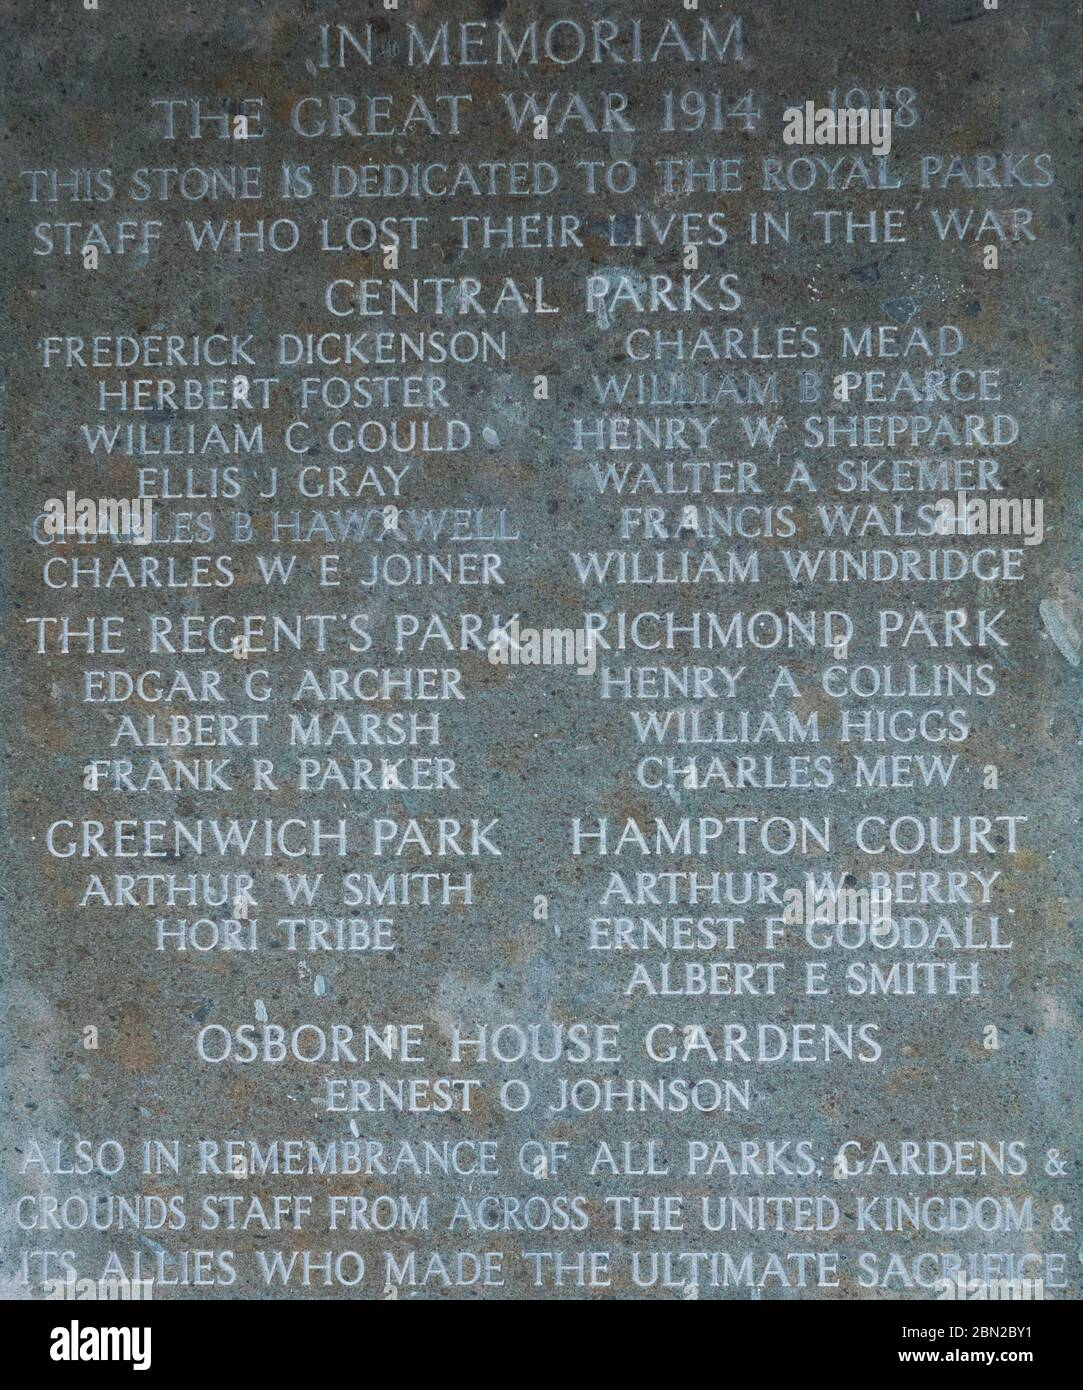 Plaque marking Royal Parks employees who fell in the Great War, on wall of colonnade in Brompton Cemetery, Kensington, London, built in 1840. Stock Photo